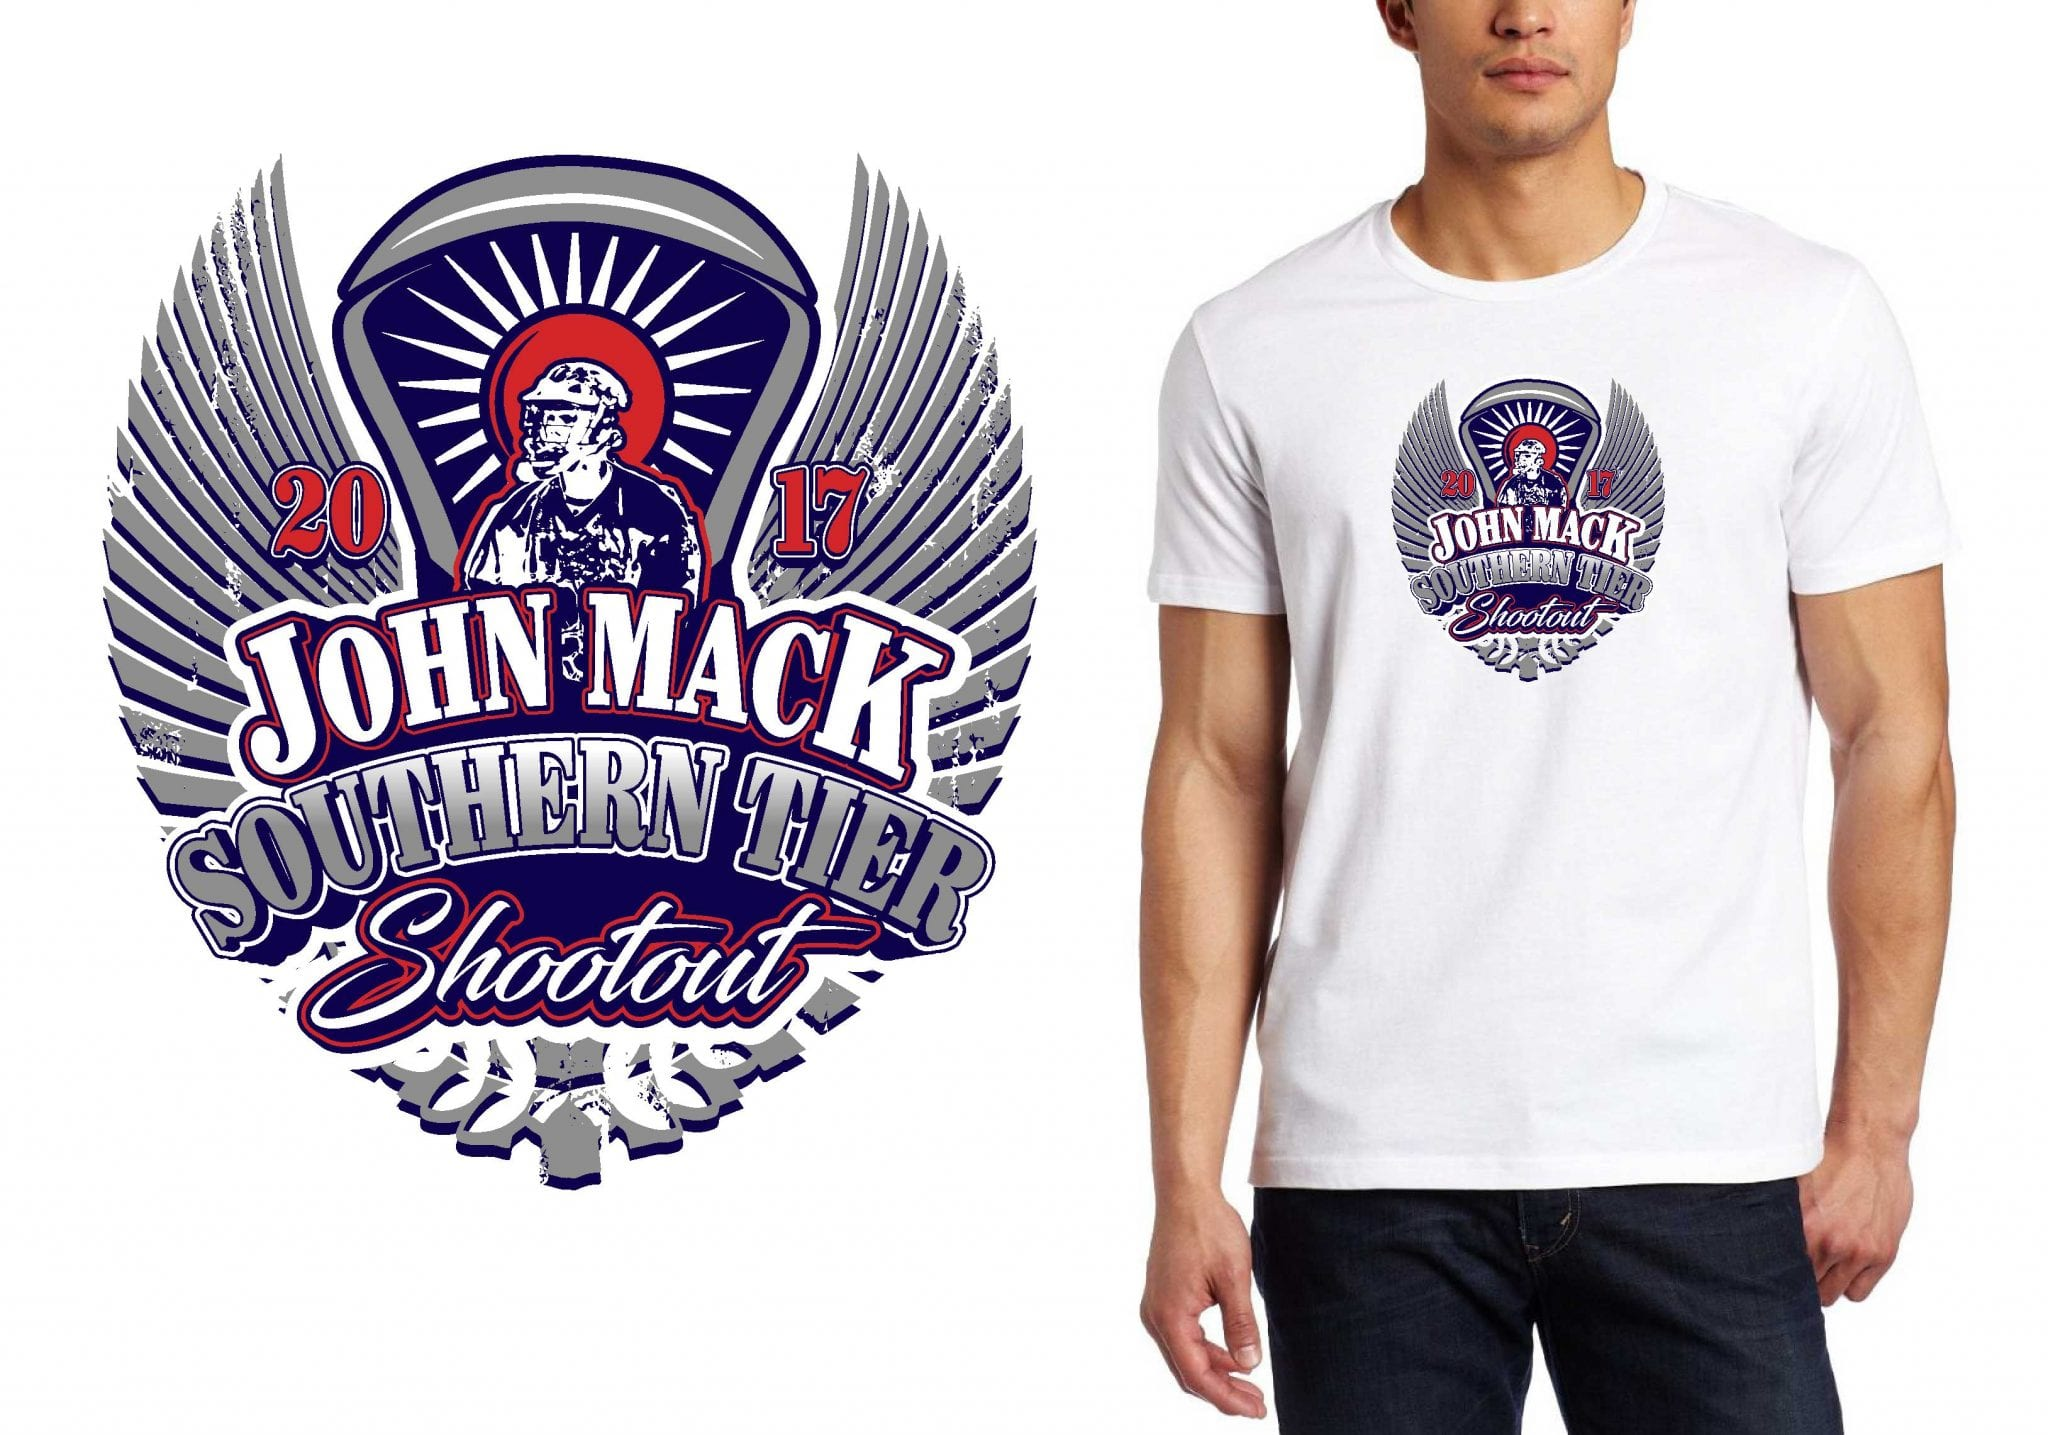 2017 John Mack Southern Tier Shootout vector logo design for lacrosse t-shirt UrArtStudio